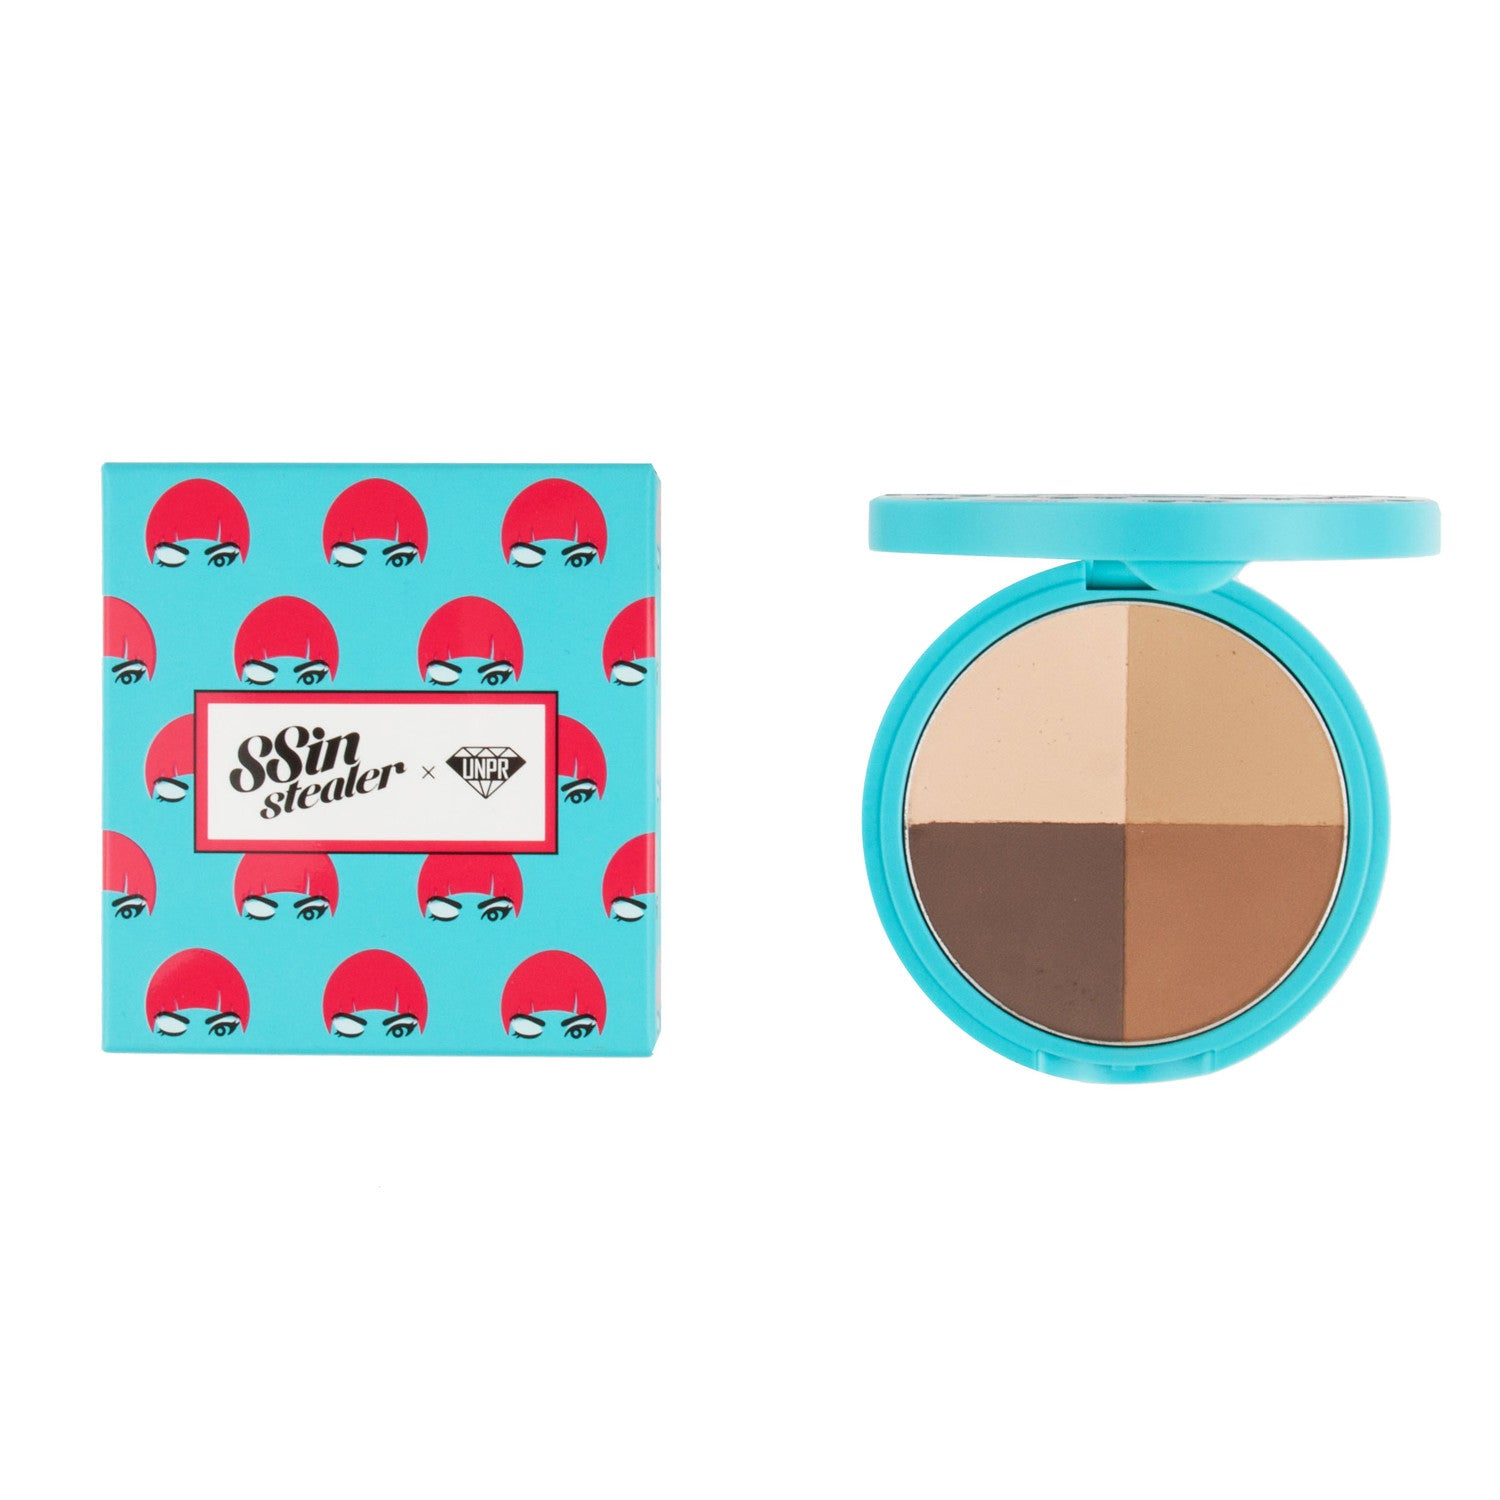 SSIN Stealer Behinder SSIN Contour Compact